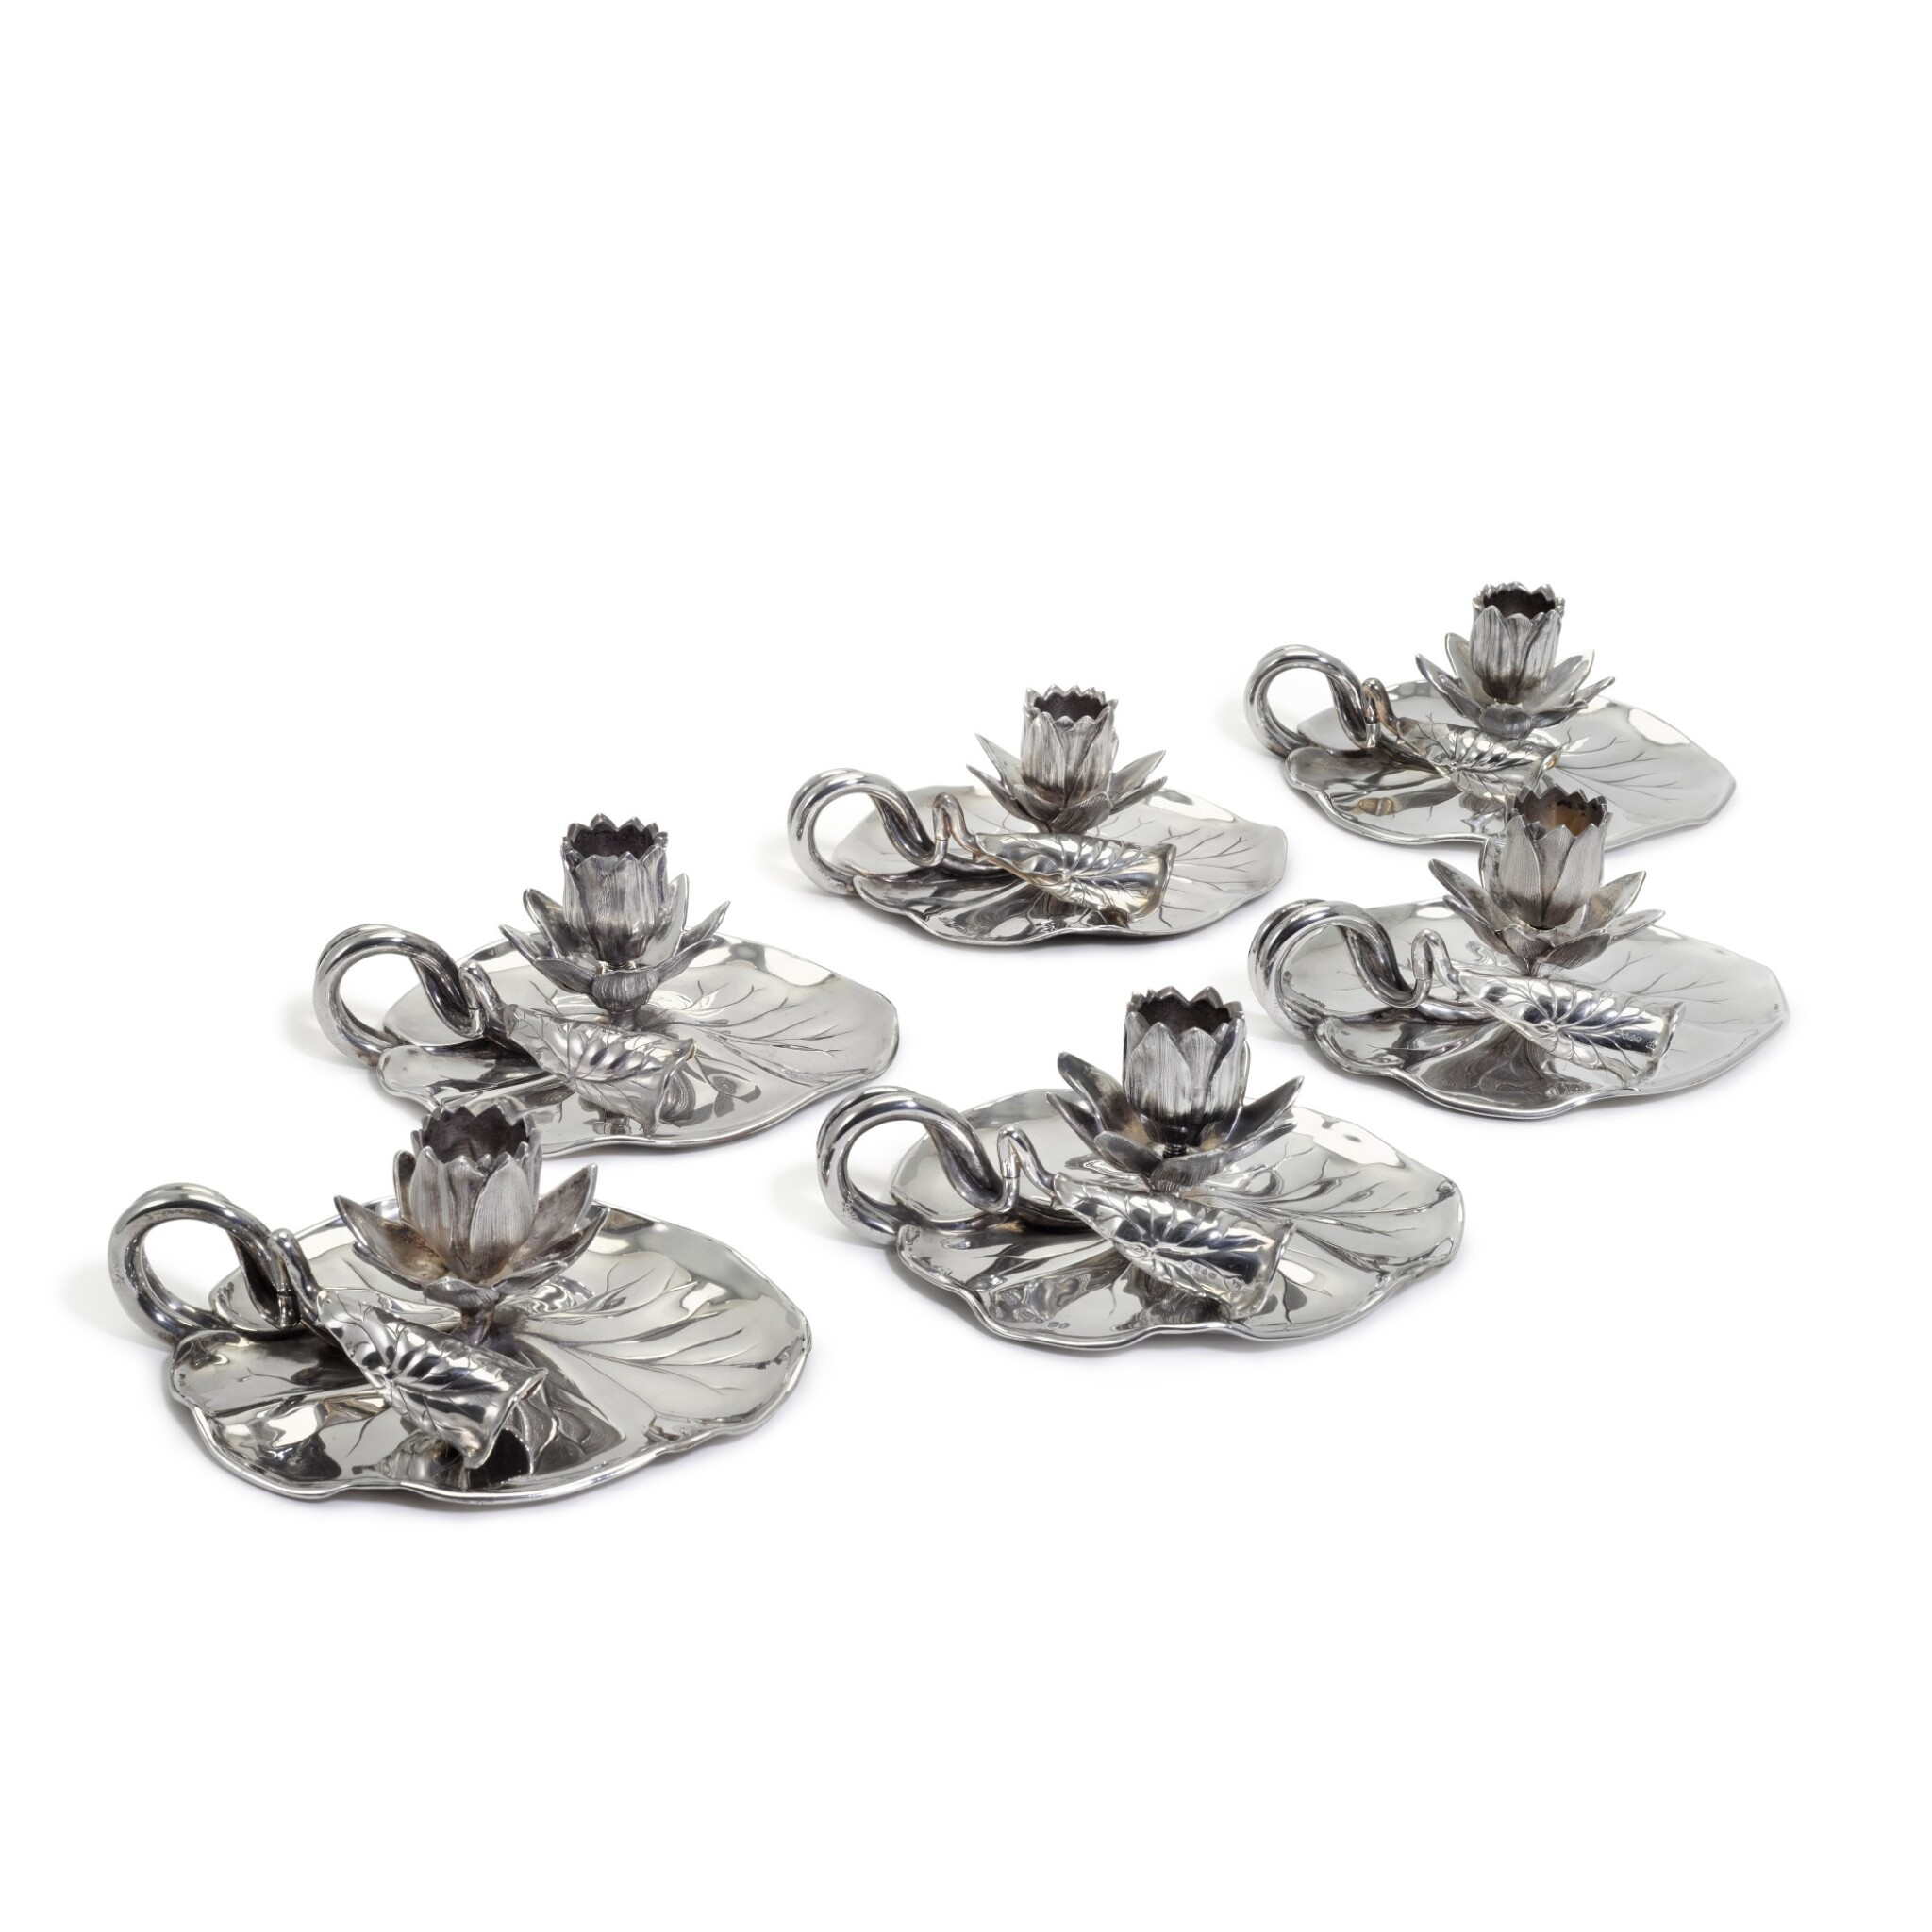 View full screen - View 1 of Lot 71. A set of six Victorian silver novelty 'Lily' chambersticks, R. & S. Garrard & Co London, 1854 and 1863.